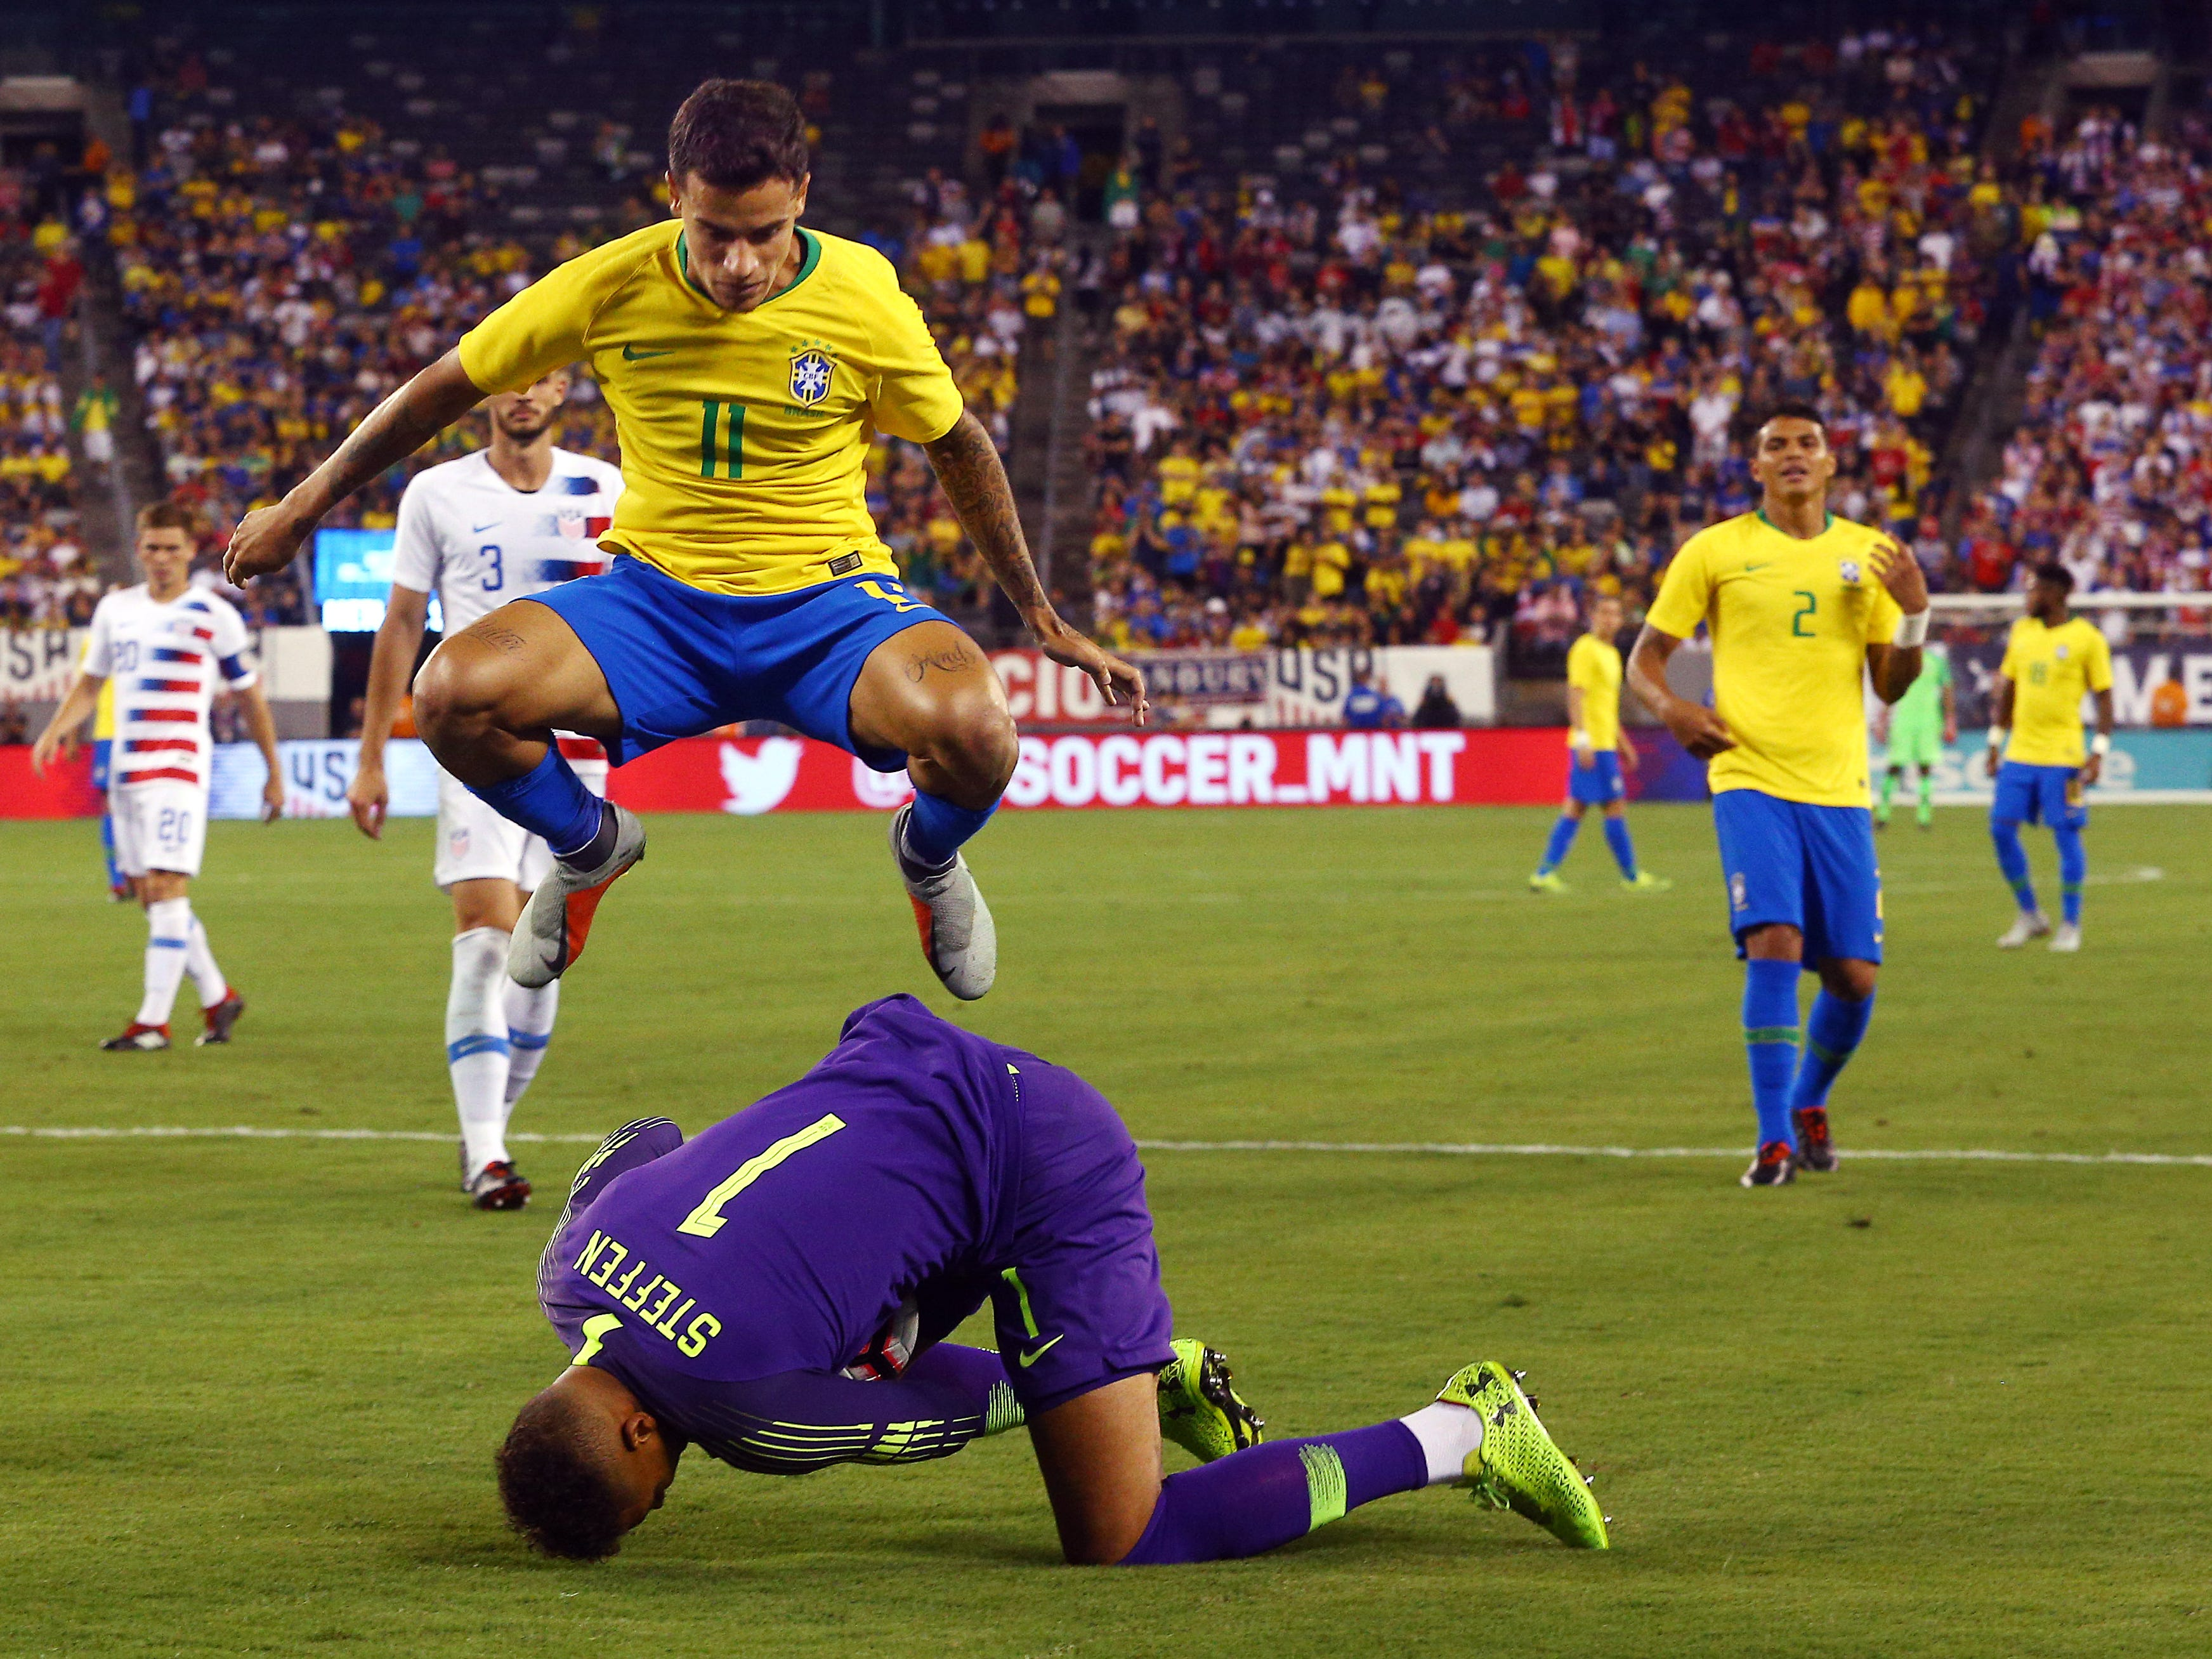 Brazil's Philippe Coutinho leaps over U.S. Men's National Team goalkeeper Zack Steffen during their international friendly at MetLife Stadium in East Rutherford, N.J. The US was defeated 2-0 by the five-time World Cup champions. September 7, 2018, East Rutherford, NJ